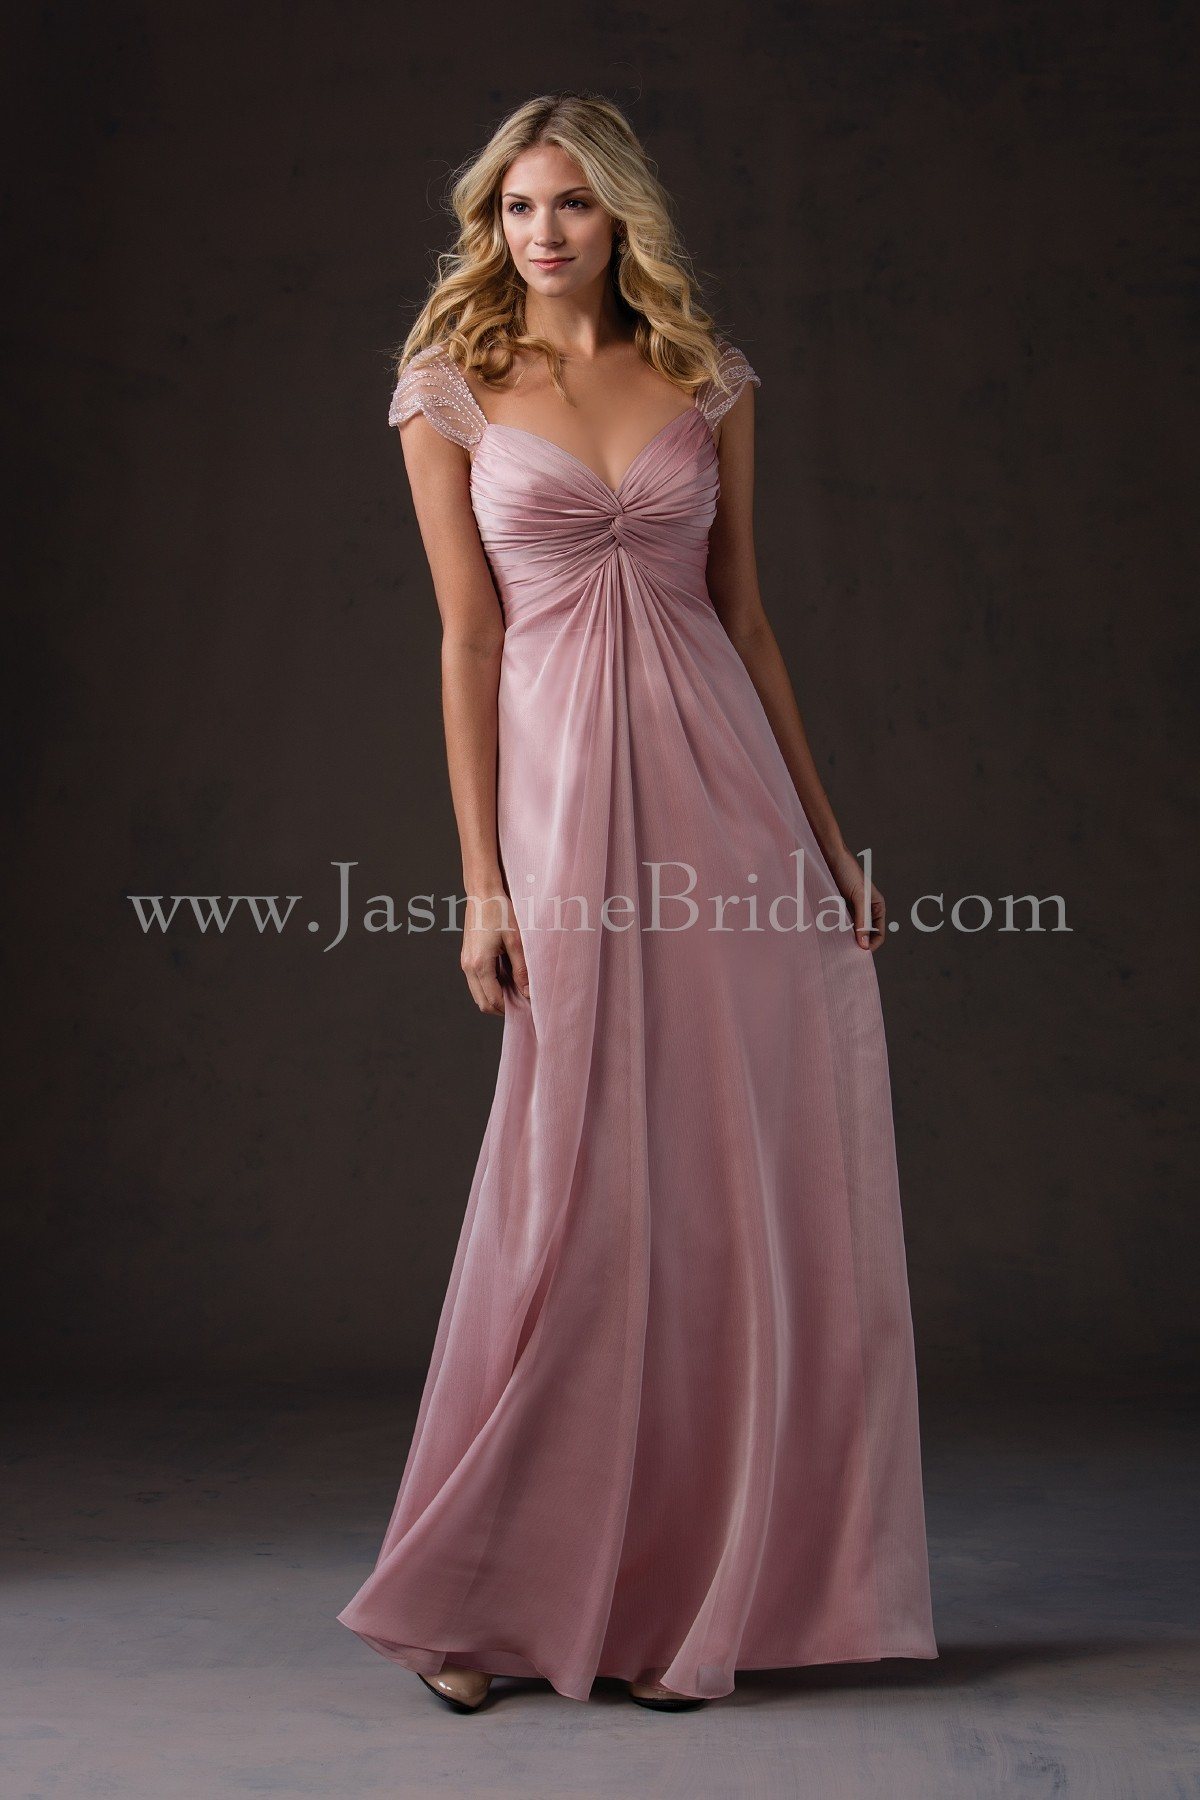 L184053 long sweetheart neckline belsoie tiffany chiffon l184053 long sweetheart neckline belsoie tiffany chiffon bridesmaid dress ombrellifo Images